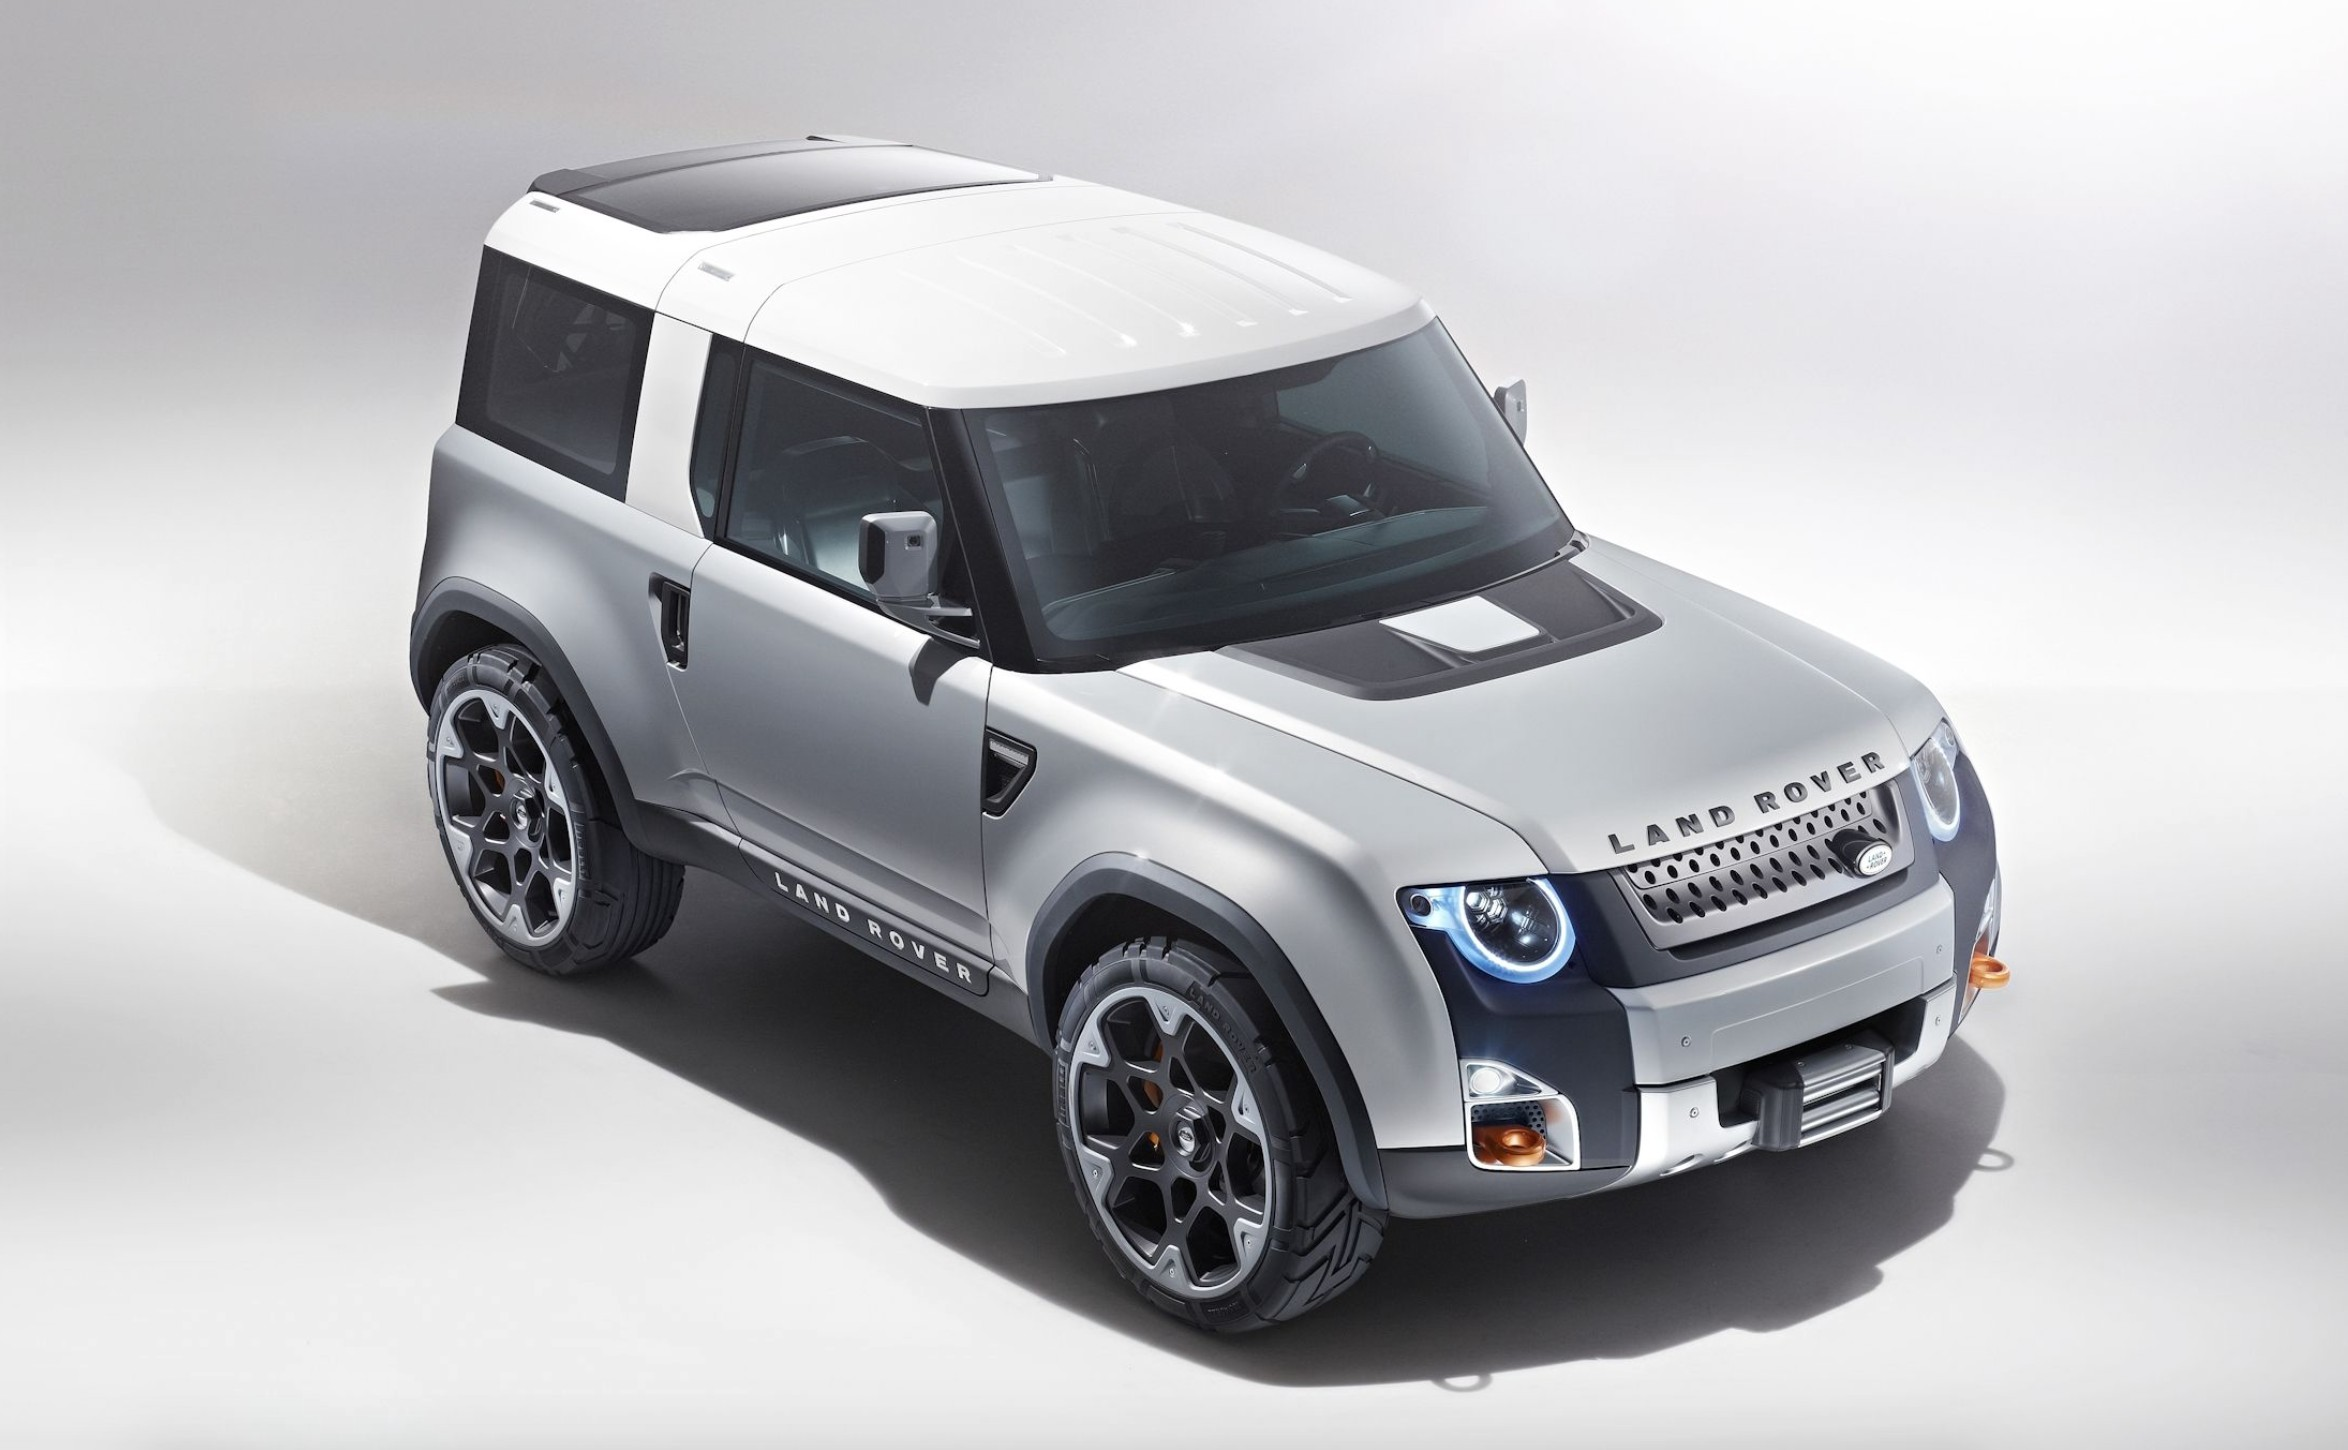 2020 Land Rover Defender In 2 110 Ford Concept Interior Value